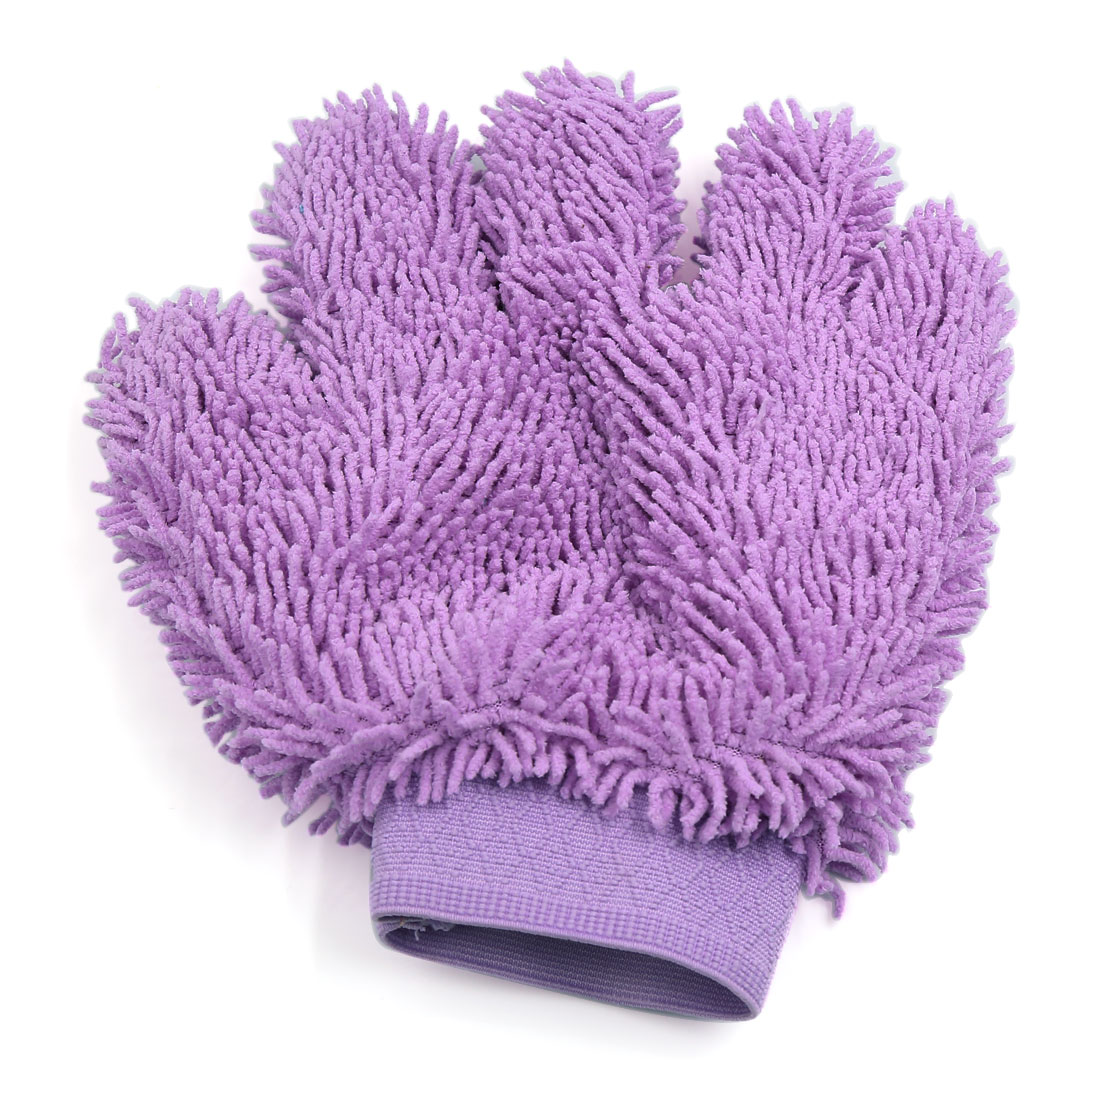 Car Cleaning Tool Five Fingers Shaped Elastic Microfiber Washing Glove Purple